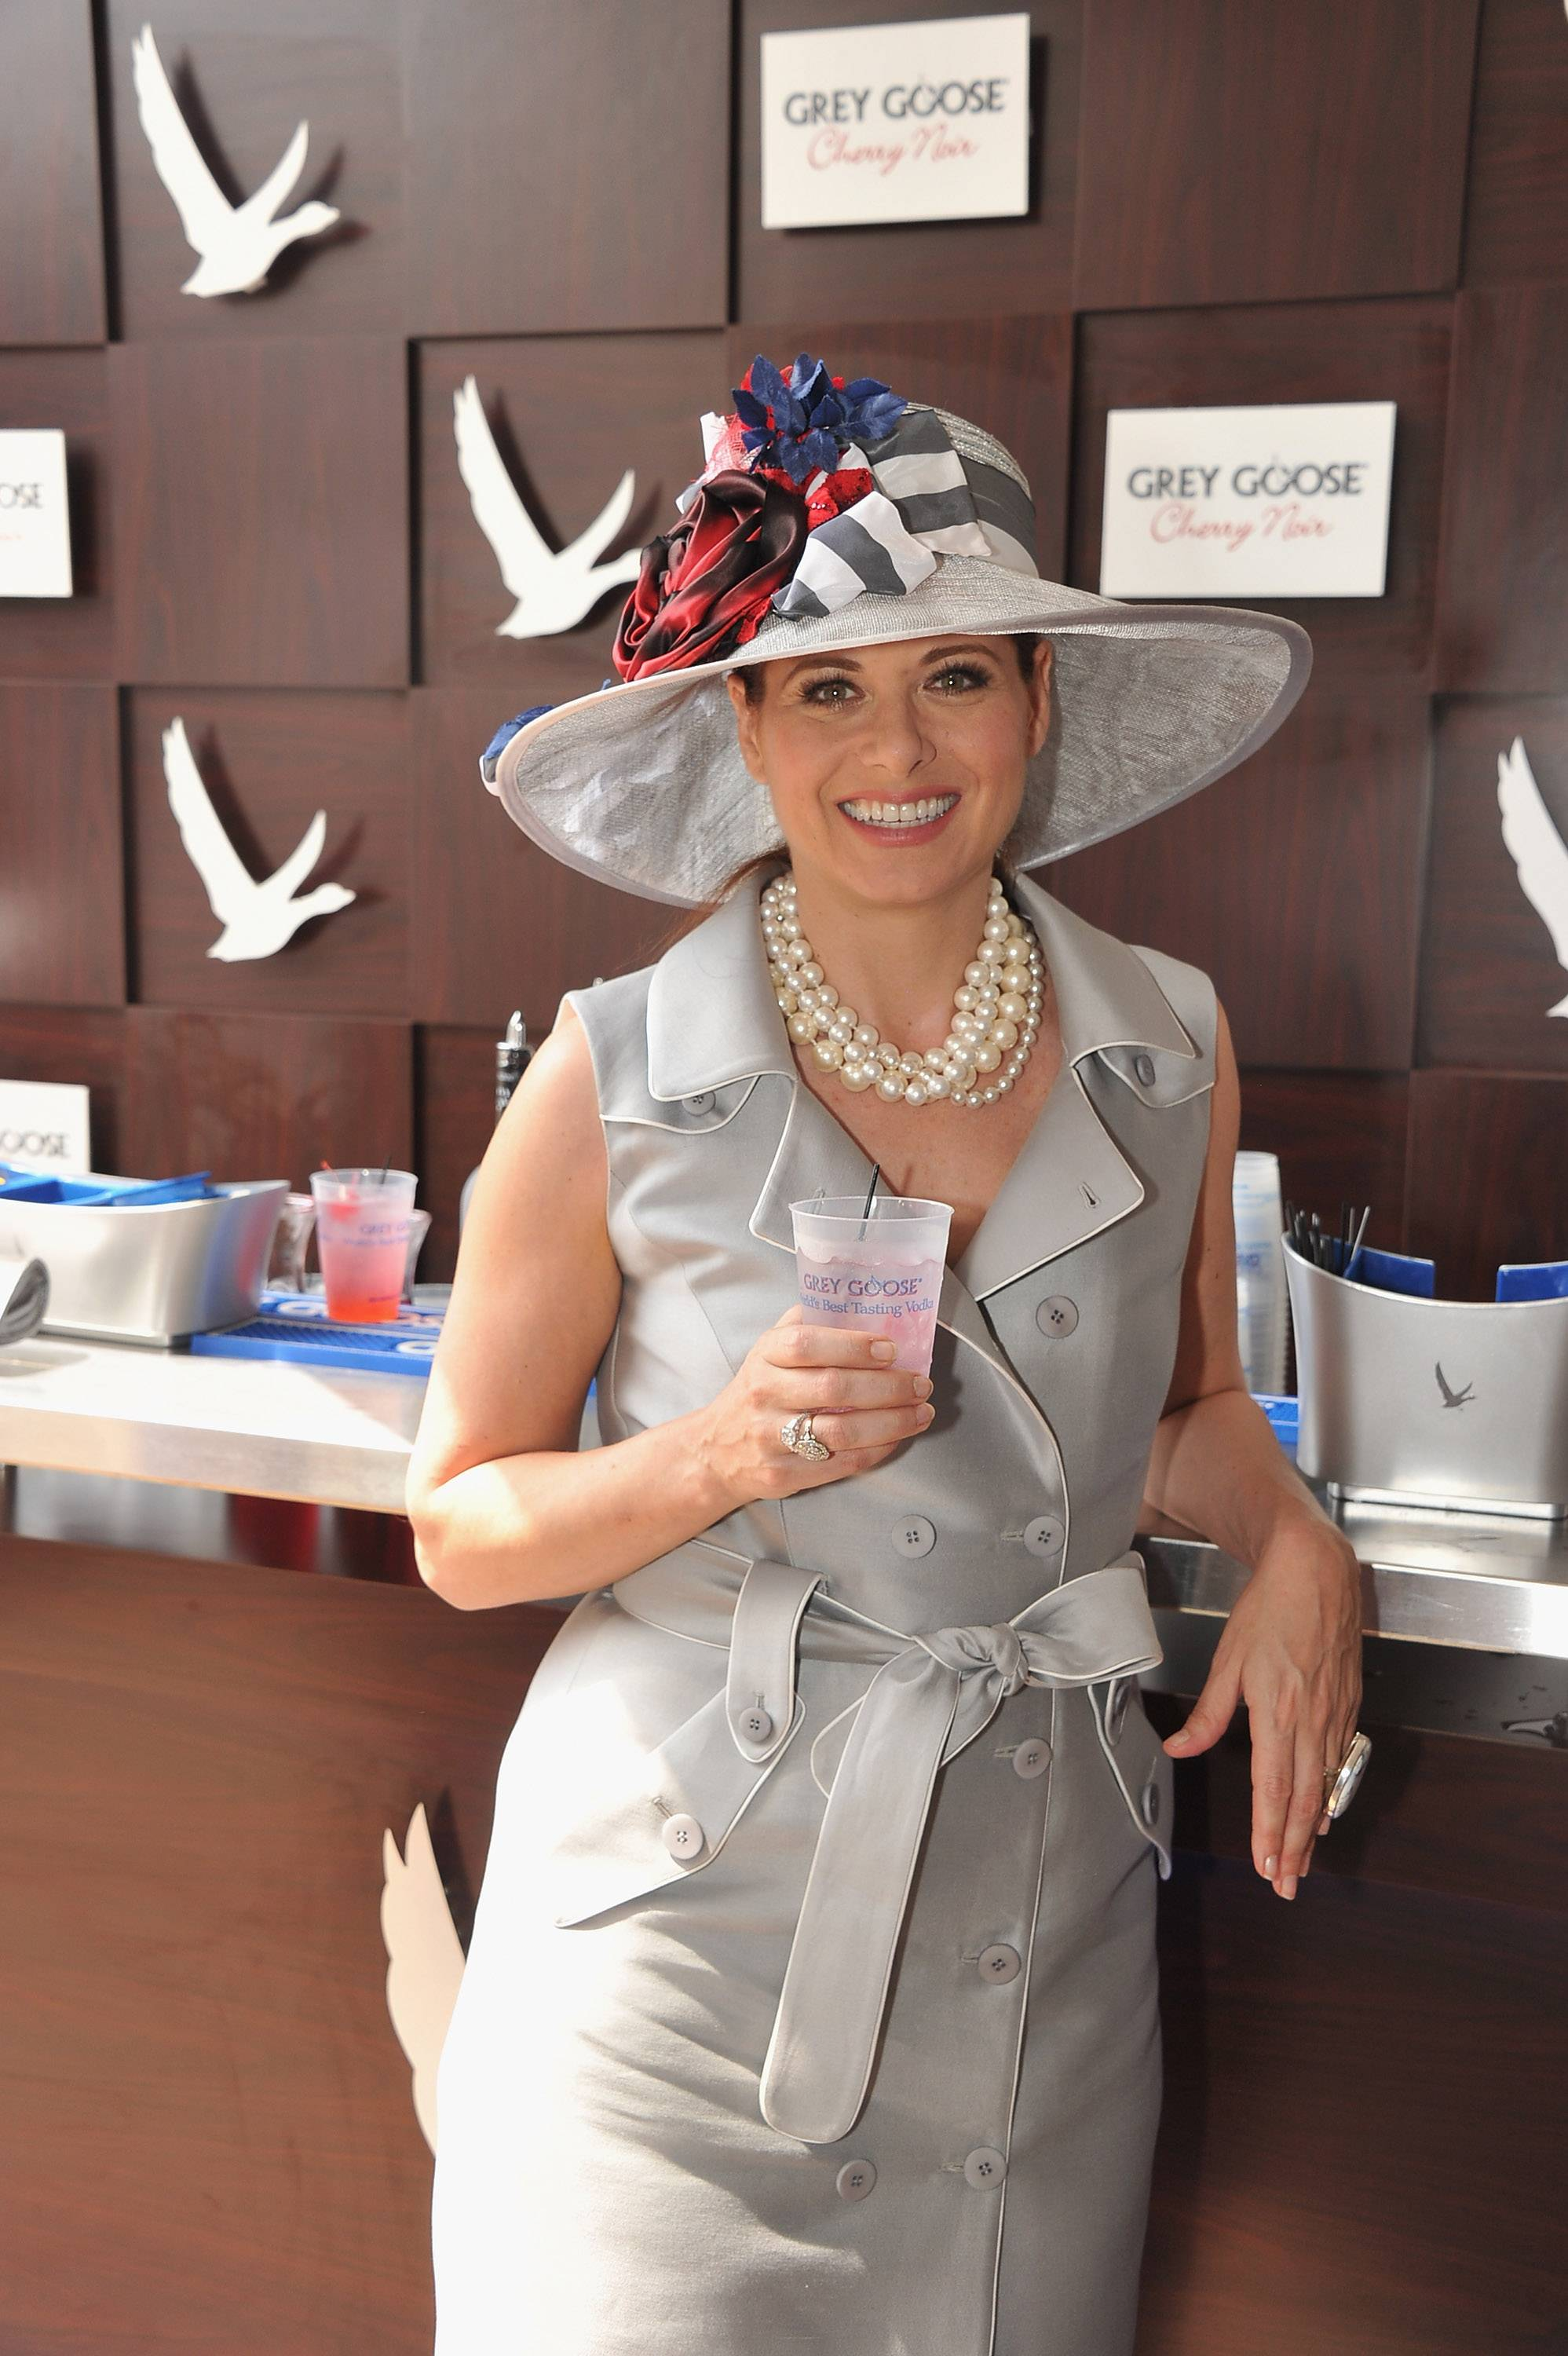 Debra Messing wears GREY GOOSE Cherry Noir Vodka Inspired Hat at the 2012 Kentucky Derby